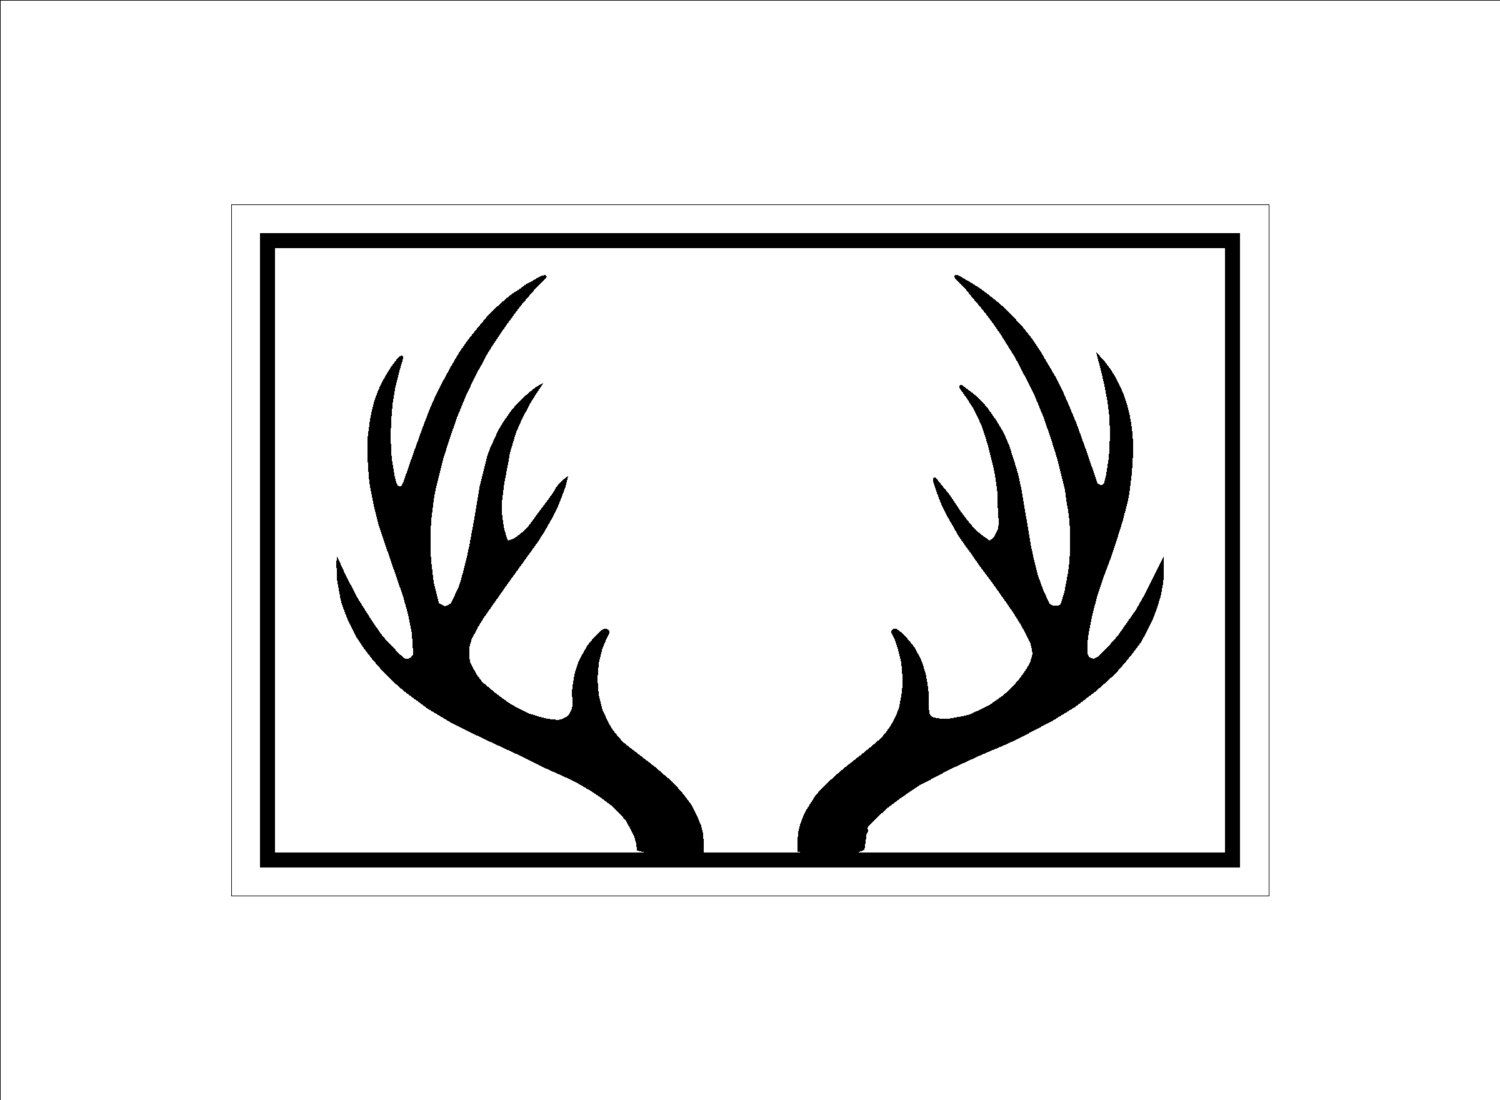 Decisive image with printable deer antlers